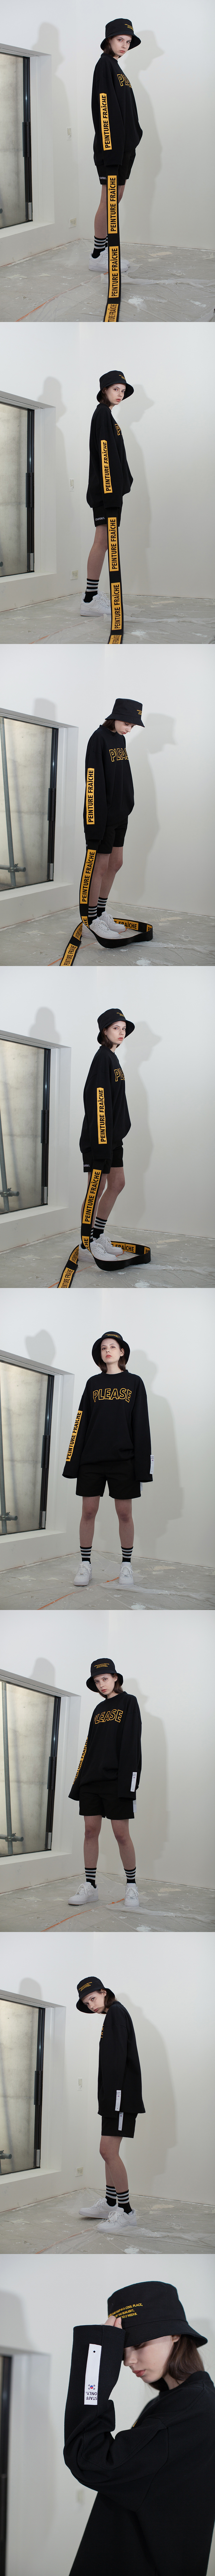 스텝온리(STAFFONLY) STAFF BUCKET HAT